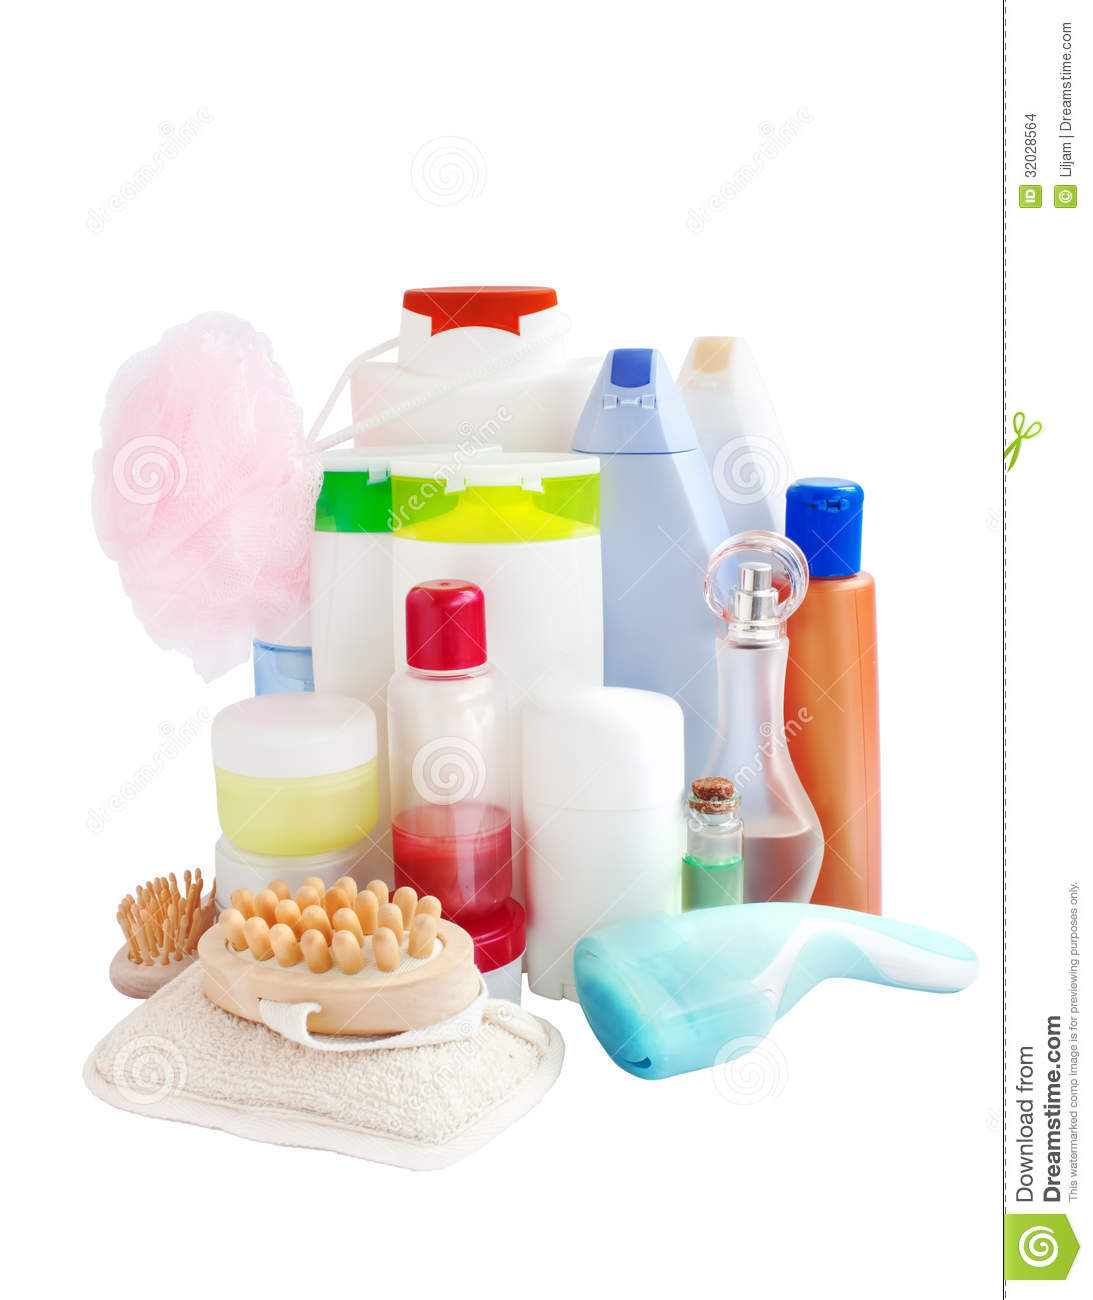 Bathroom Products Care And Bathroom Products Stock Photo Image Of Care